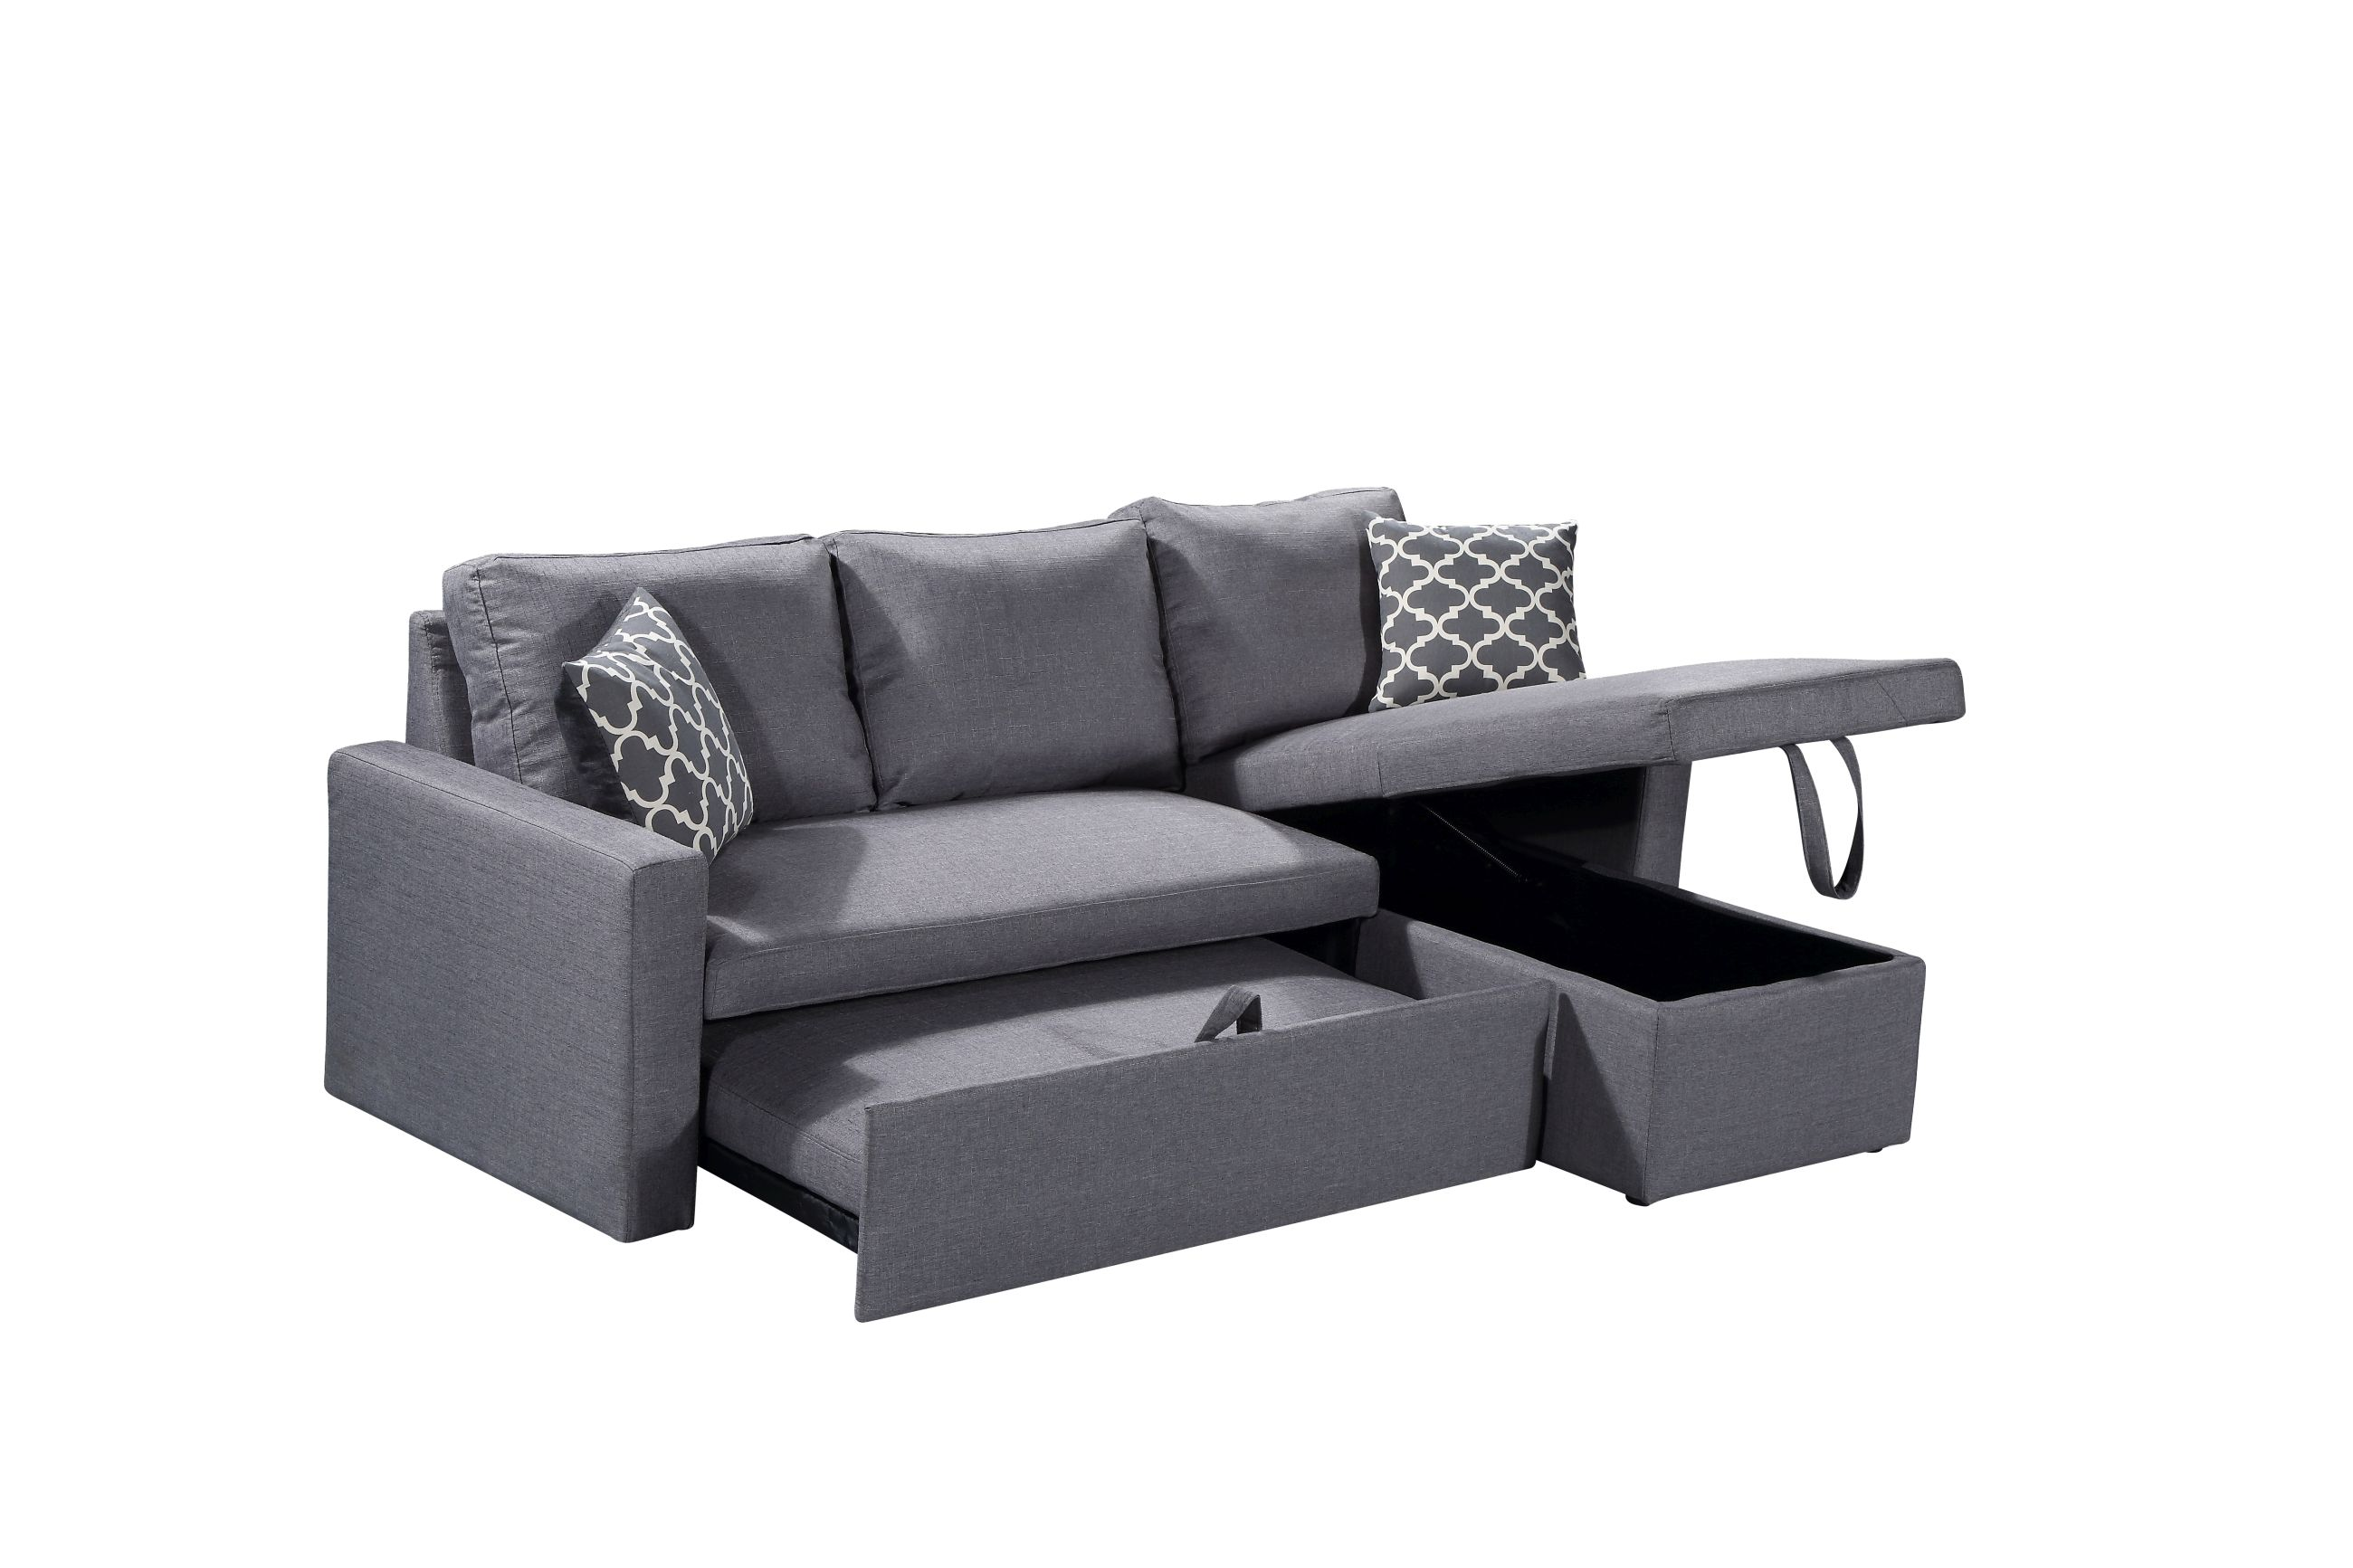 leather sectional sofa amazon italian beds chiara right sleeper full kitchen bed dp dining com